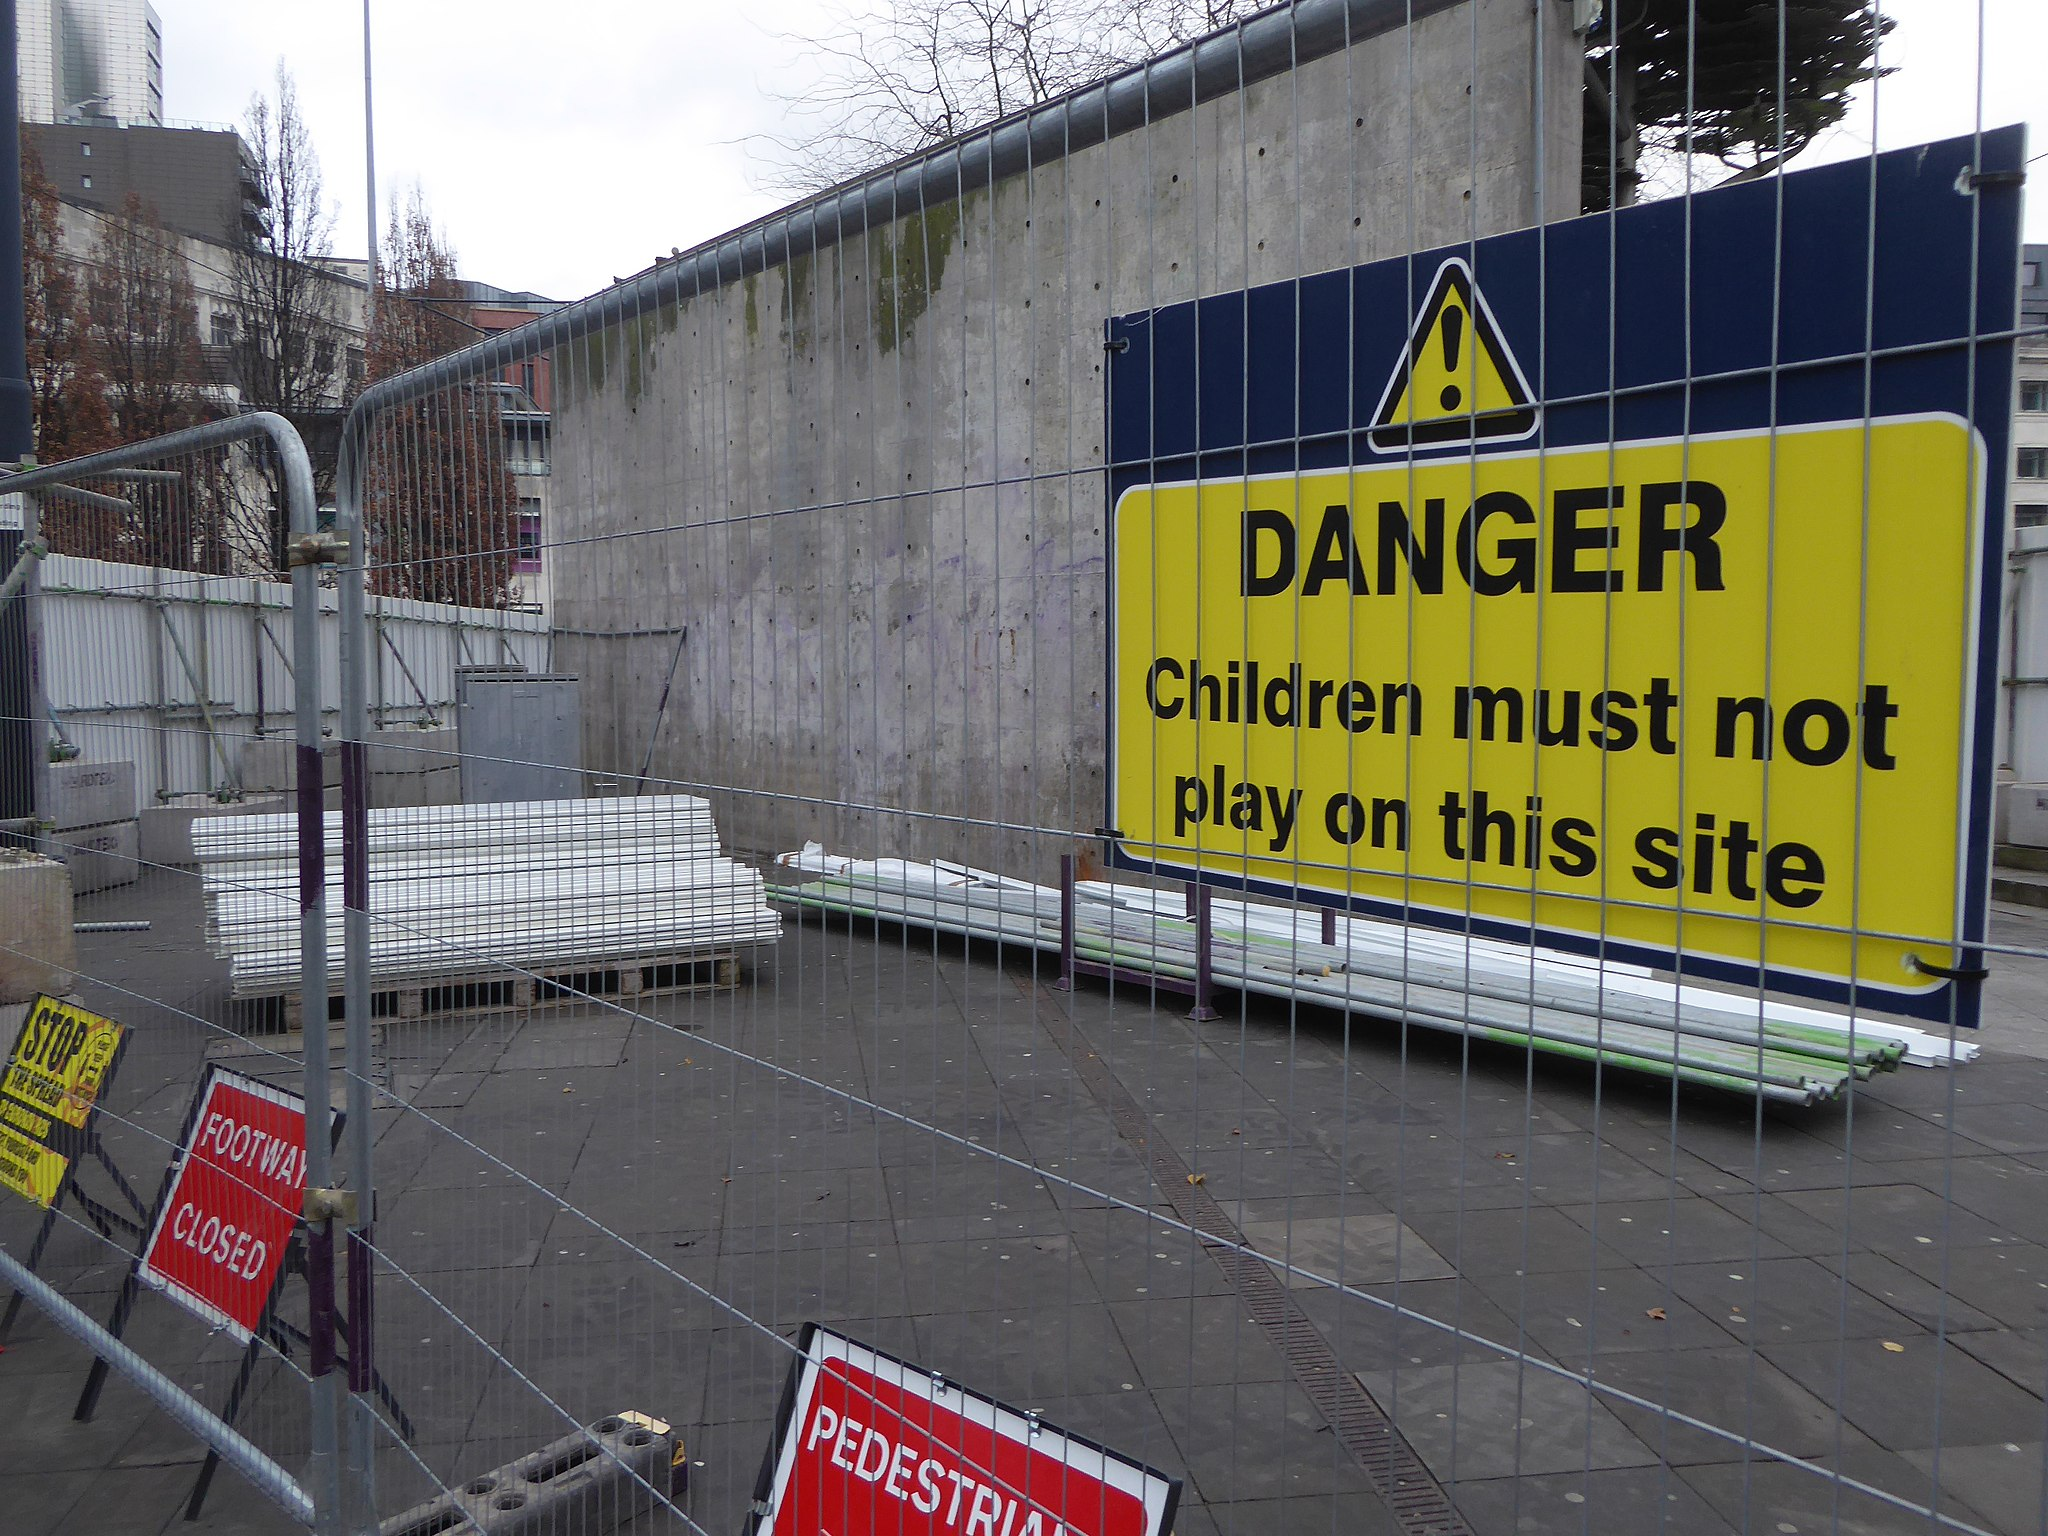 barricades and warning signs at a concrete wall